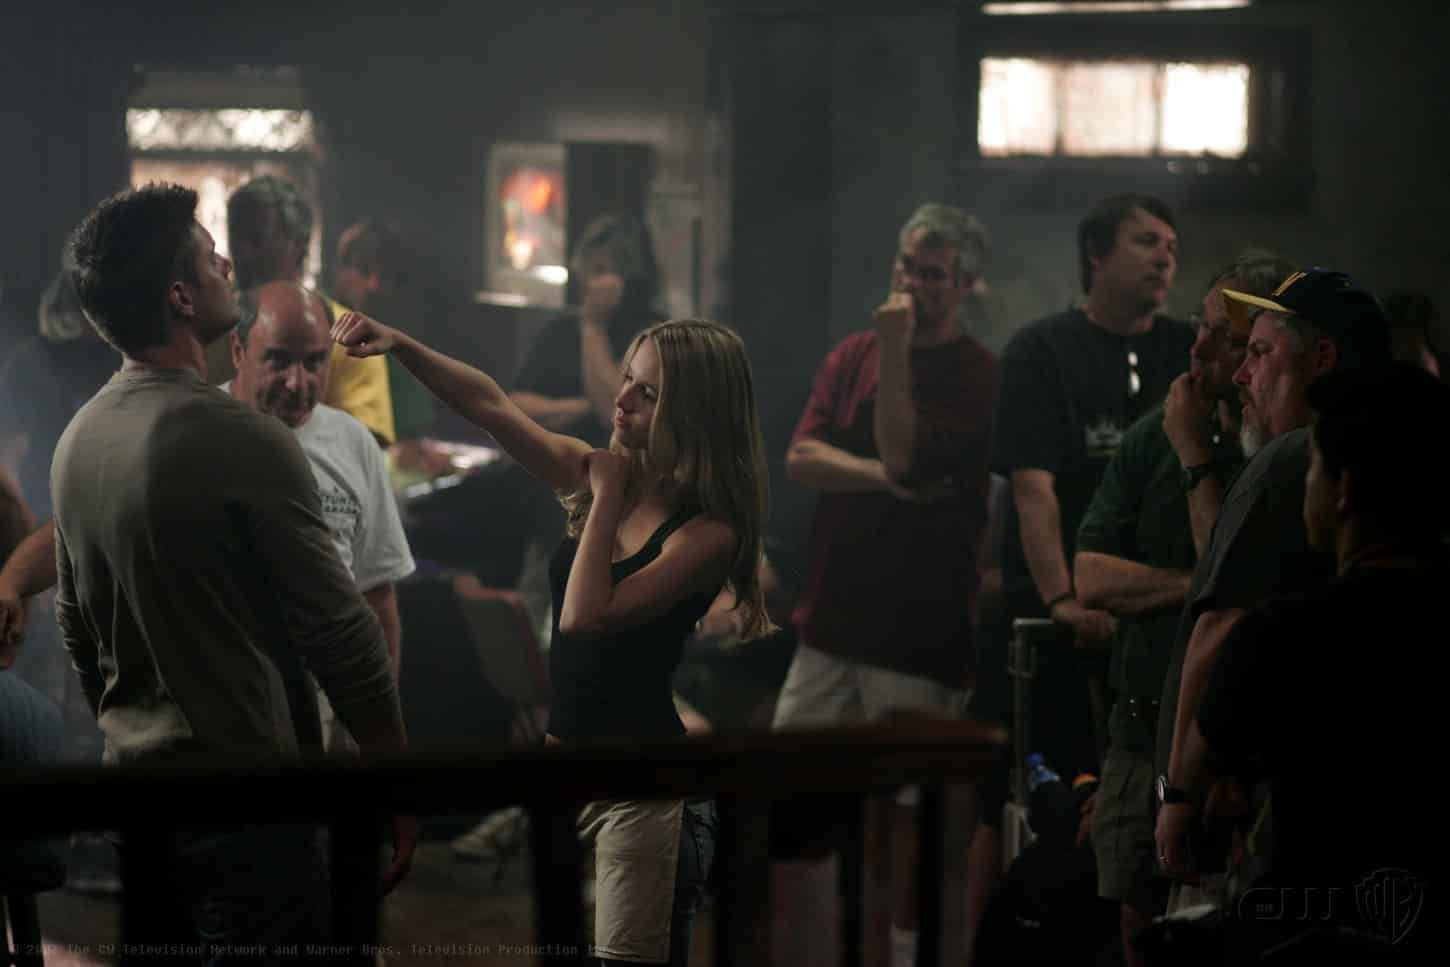 Everybody-loves-a-clown-supernatural-2x02